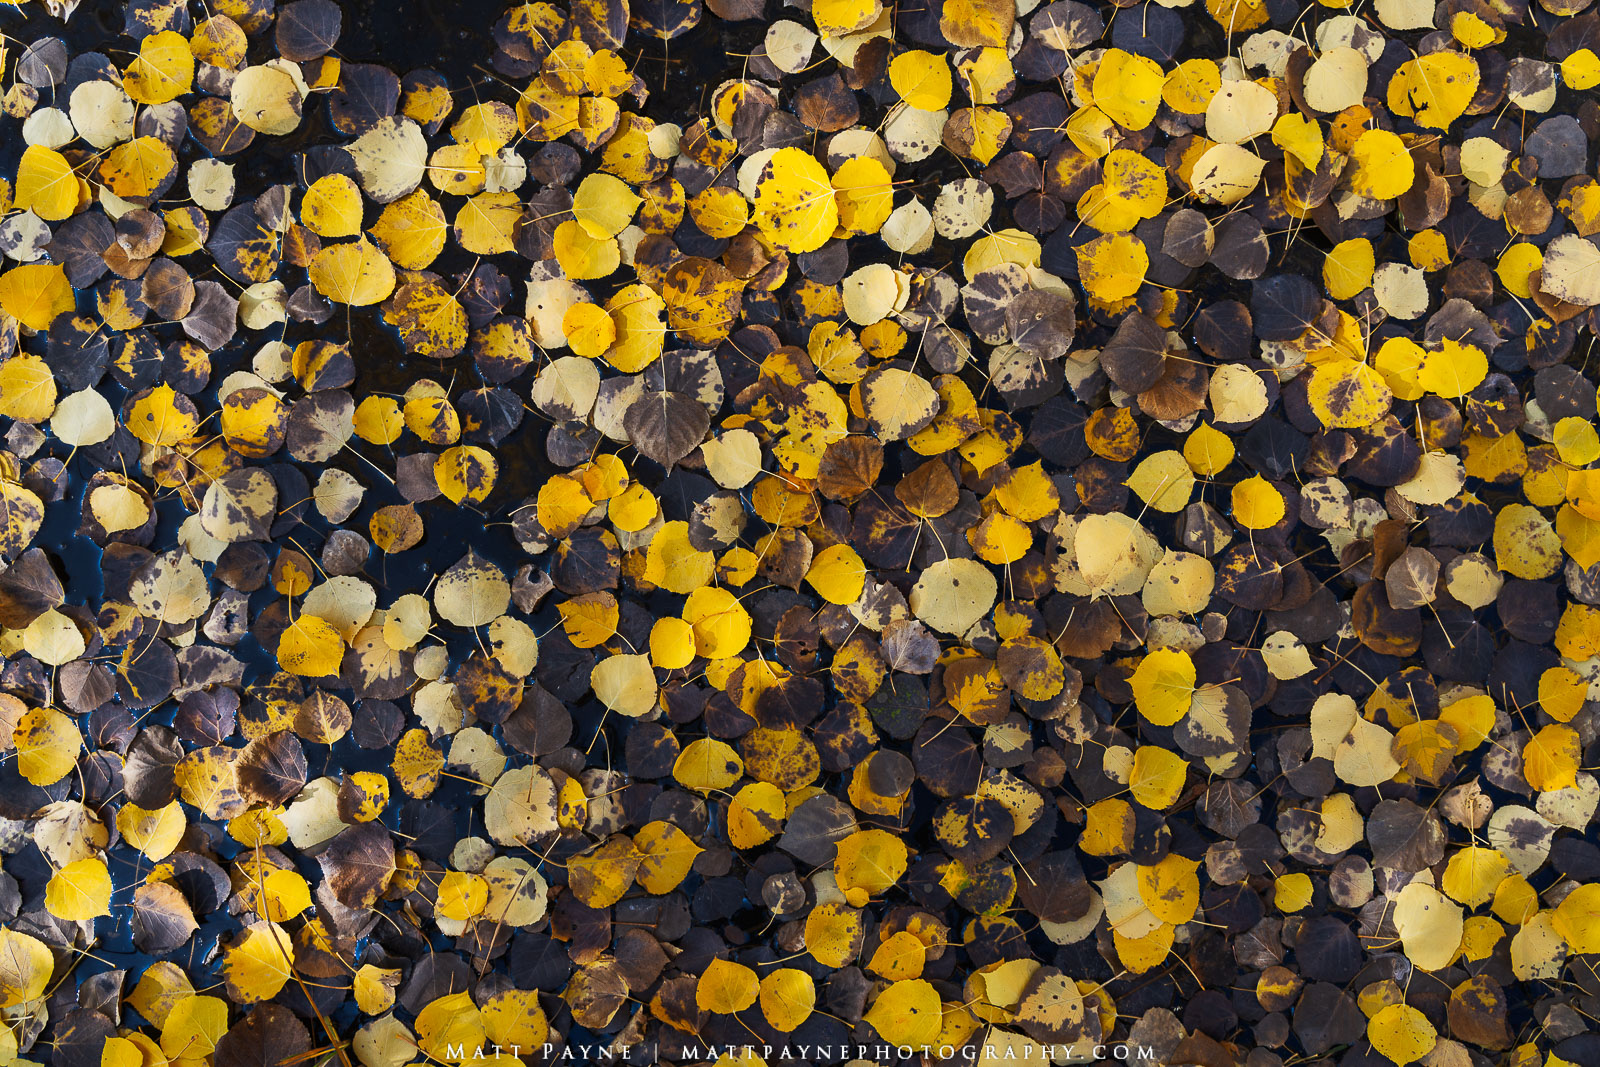 Here, a TON of fallen aspen leaves float in still water in a stream in the forests of Colorado in the San Juan Mountains. I liked...